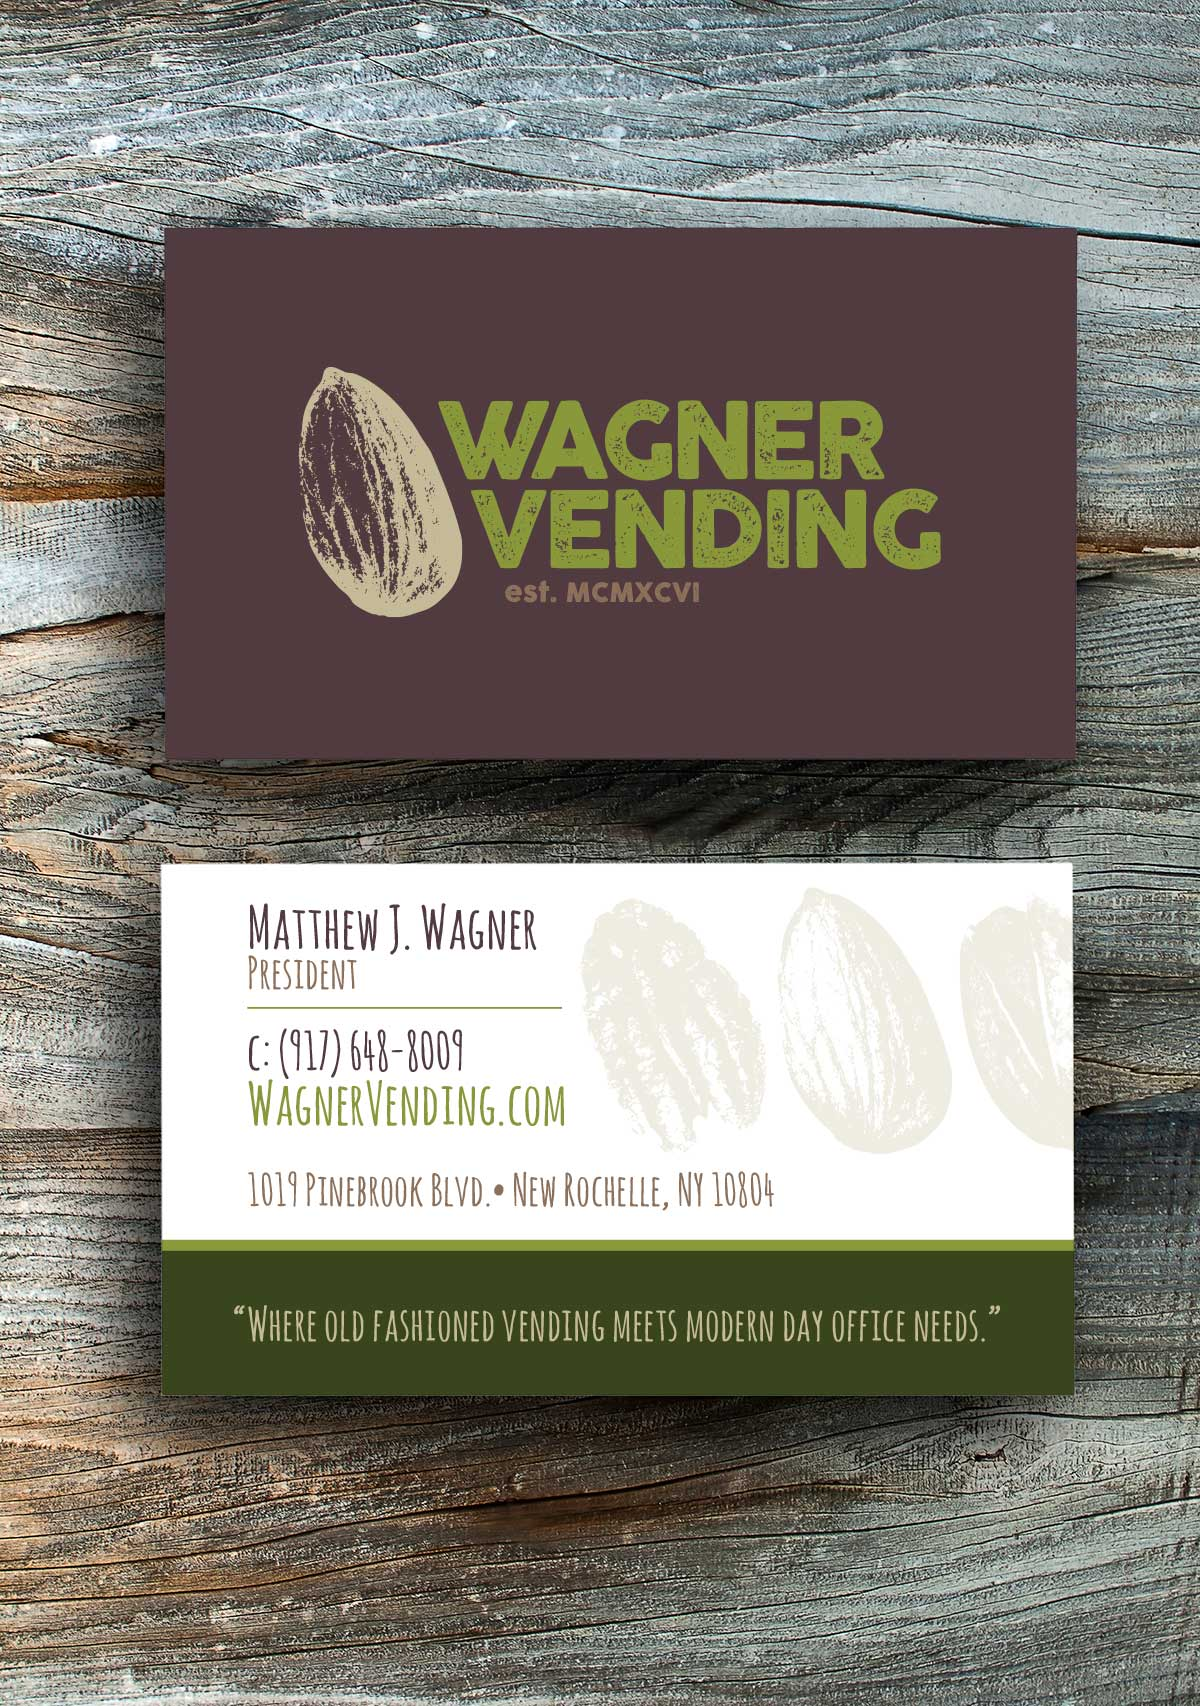 Wagner vending business card struvedesigns wagner vending business card colourmoves